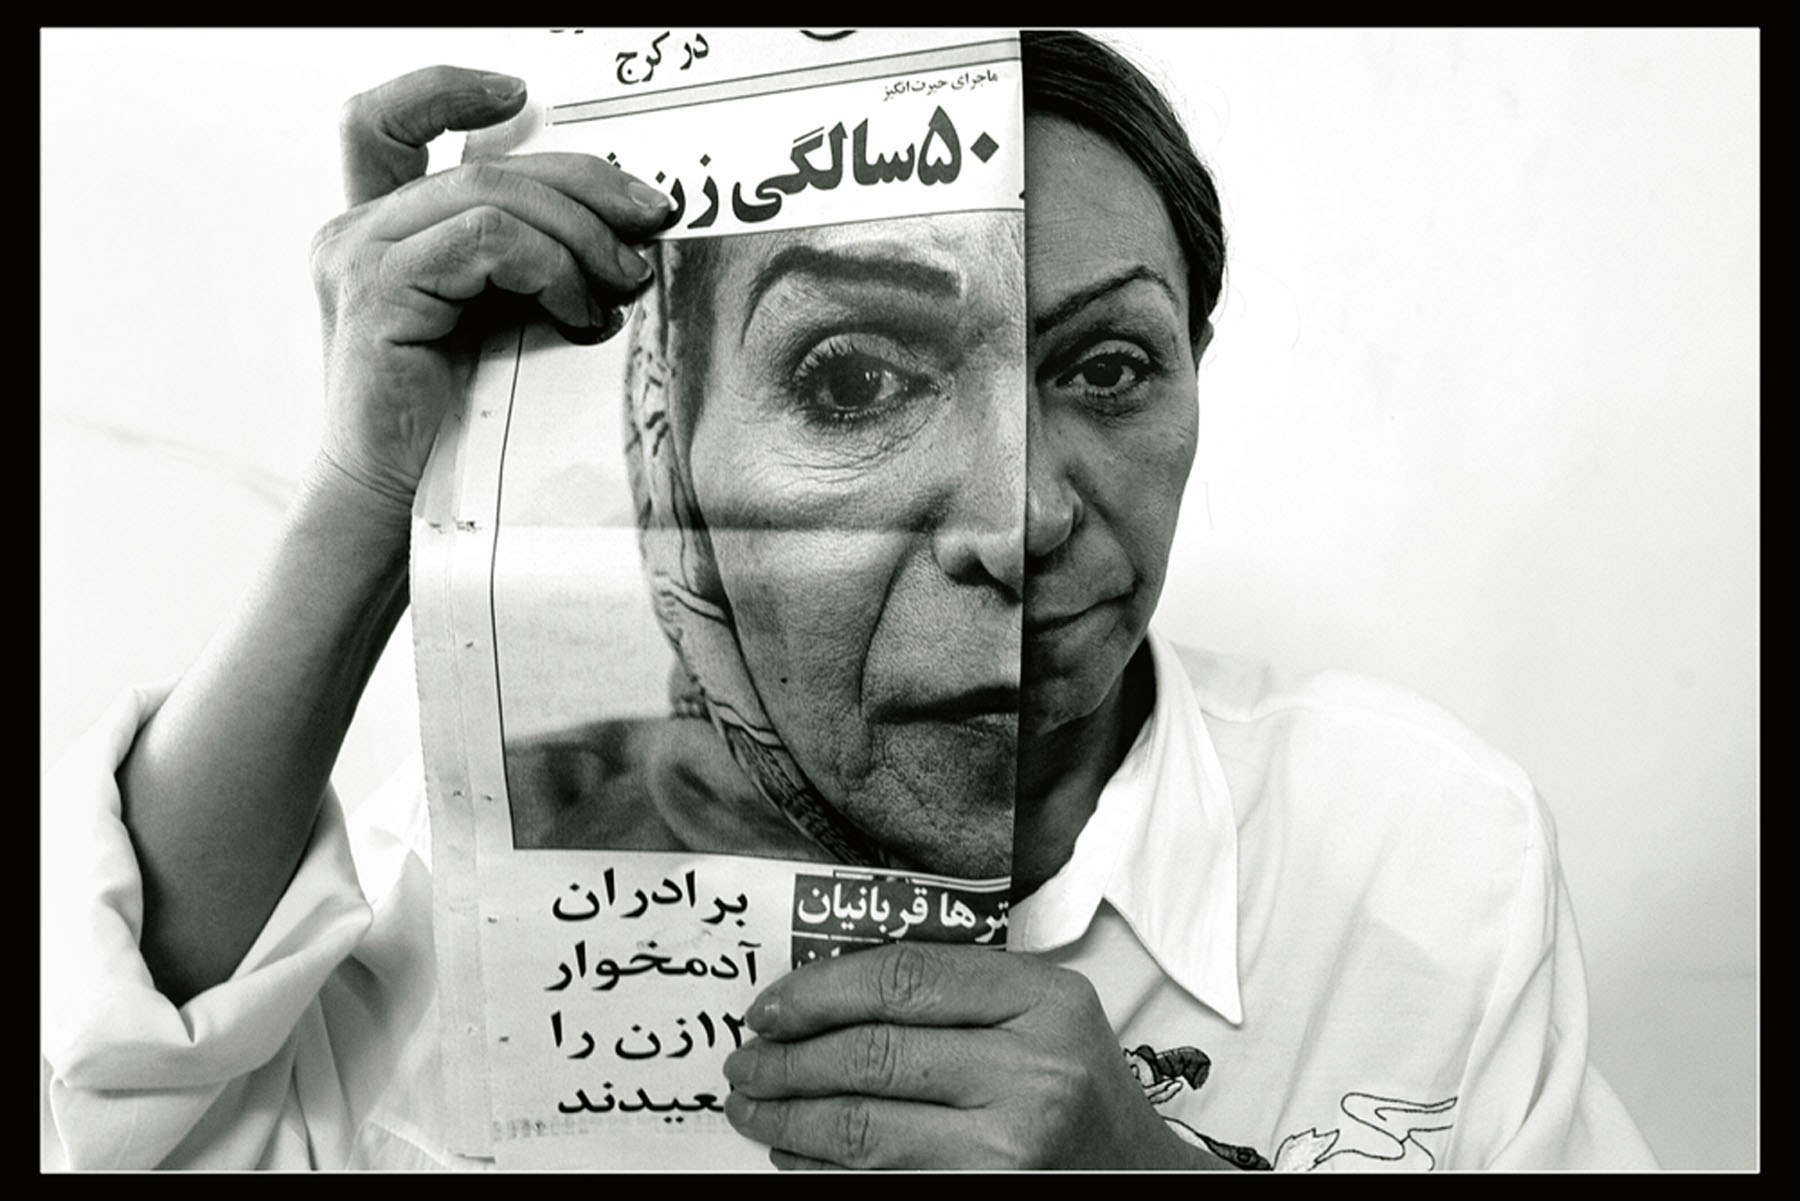 Newsha Tavakolian, Maria, 2007. Photograph. Courtesy of Aaran Gallery, Tehran